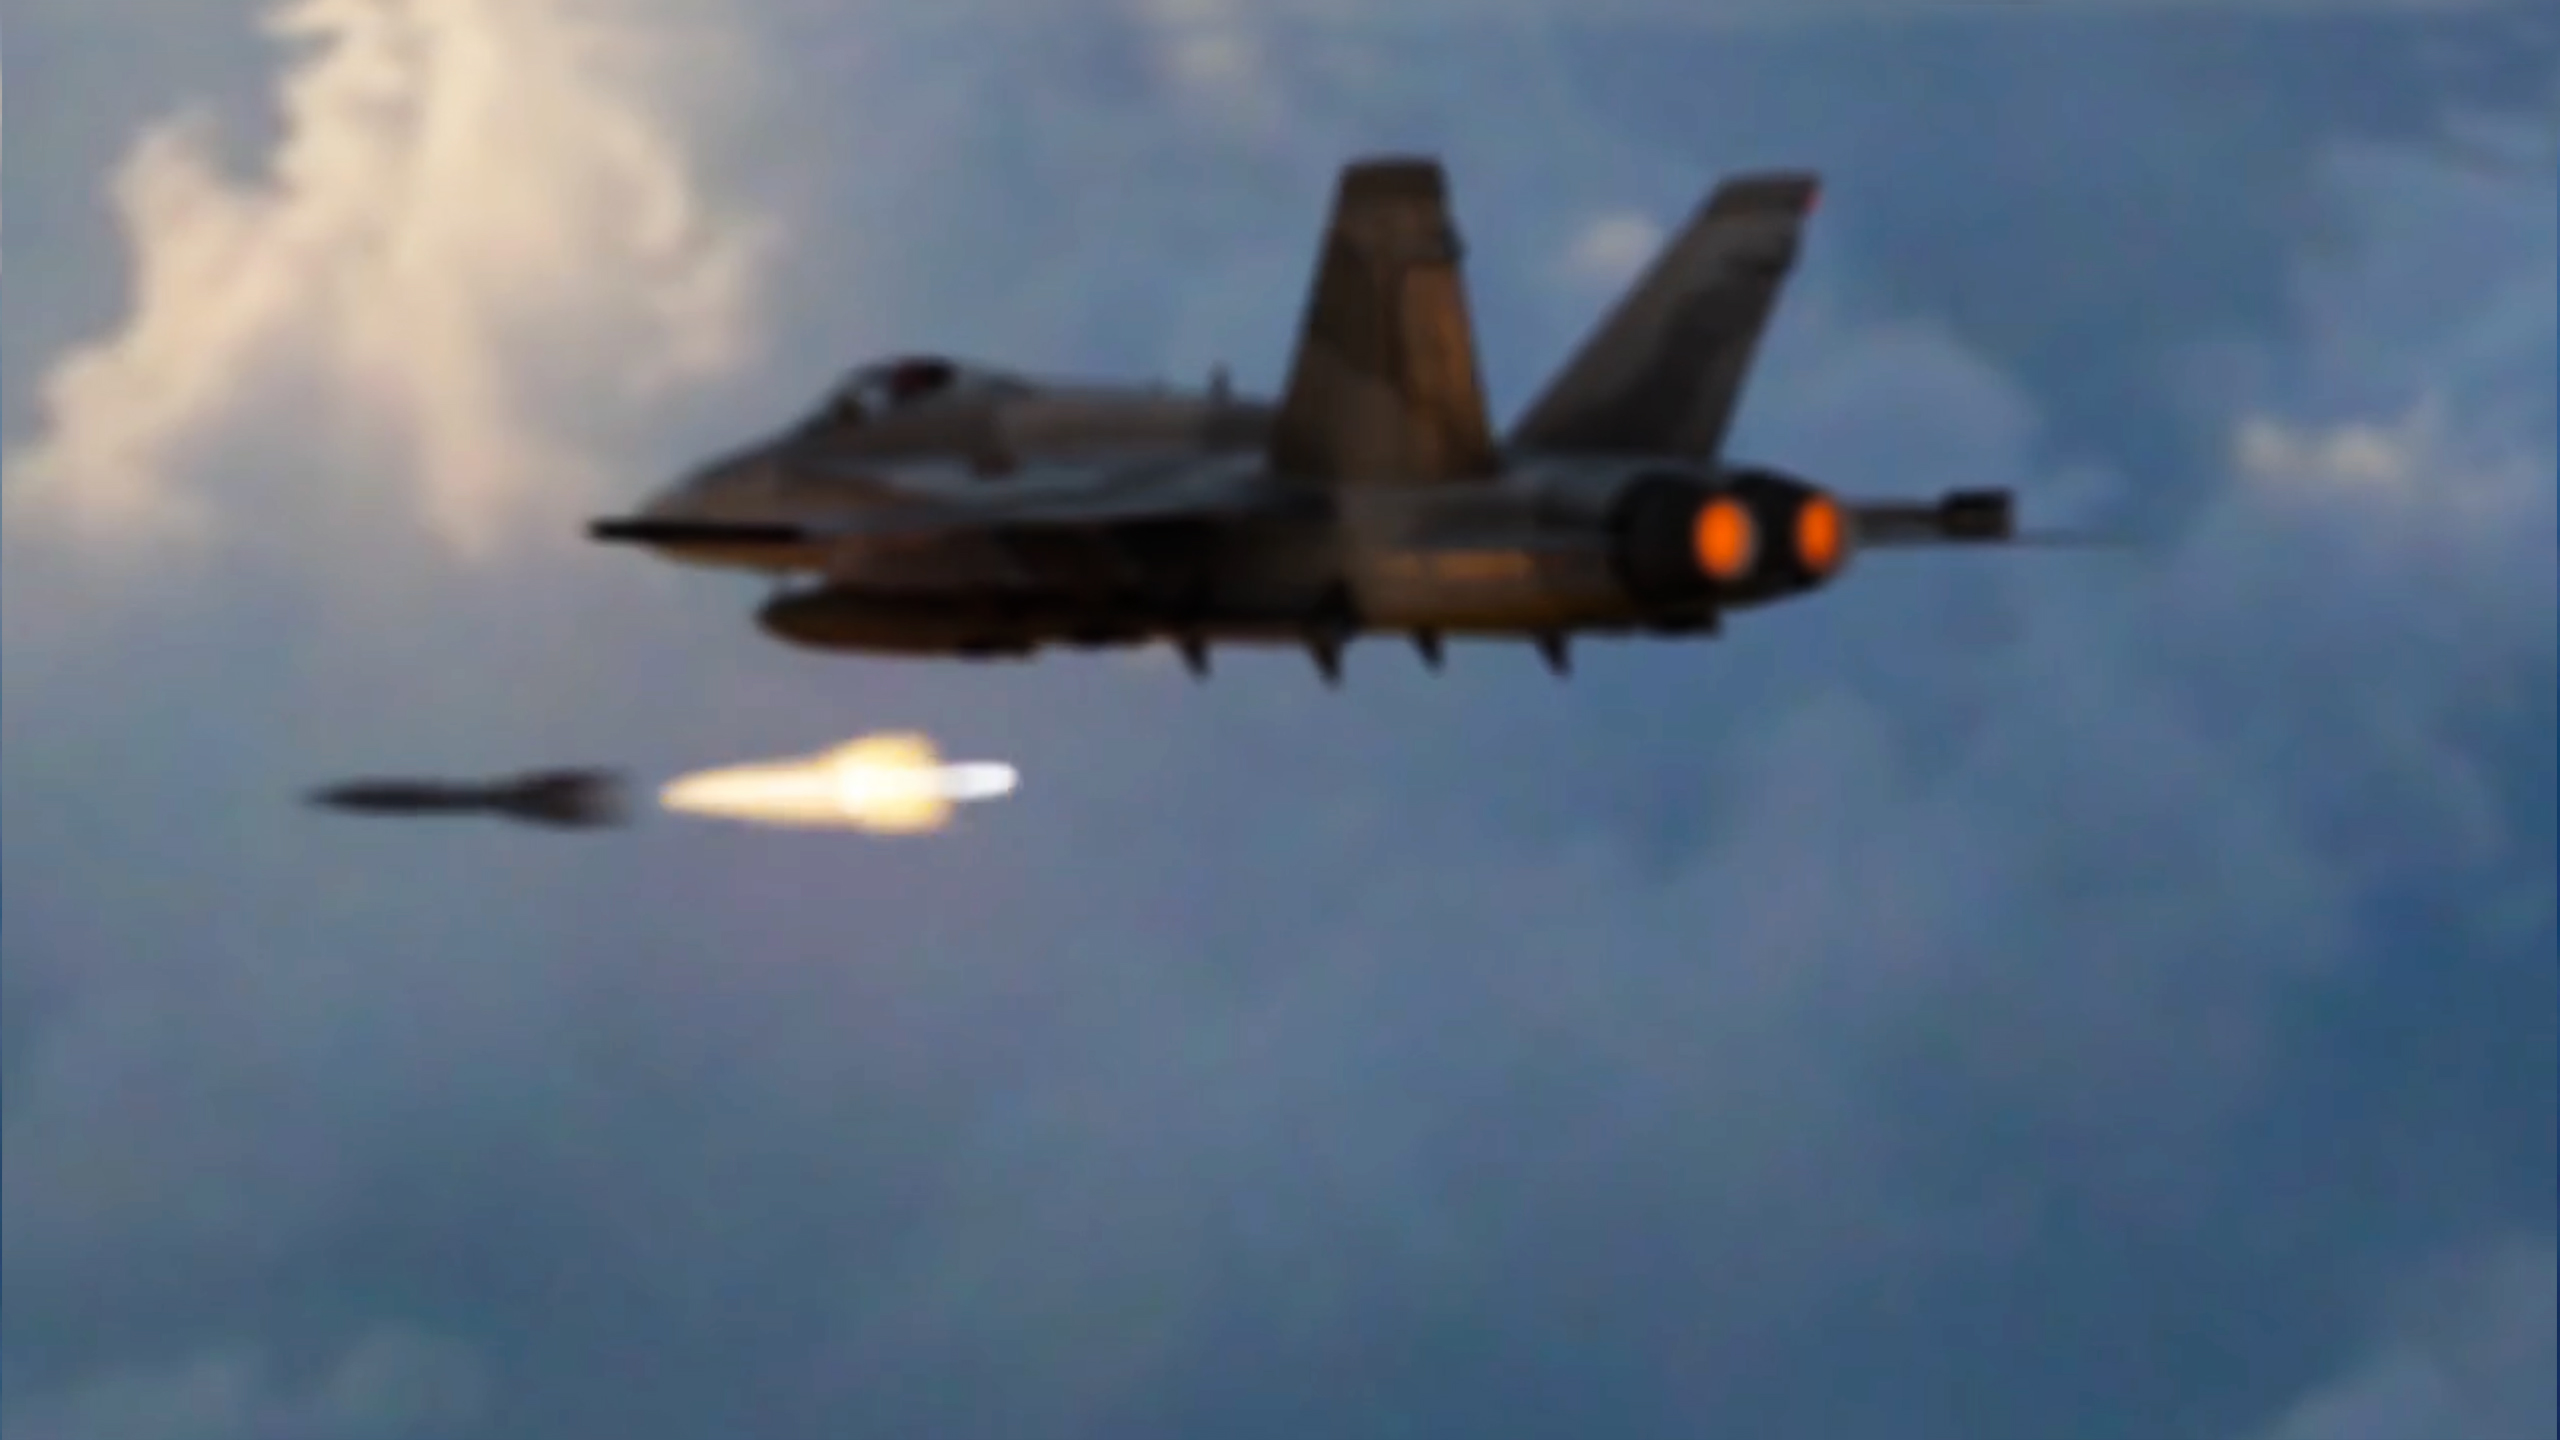 3D jet fighter launching missle in cloudy sky